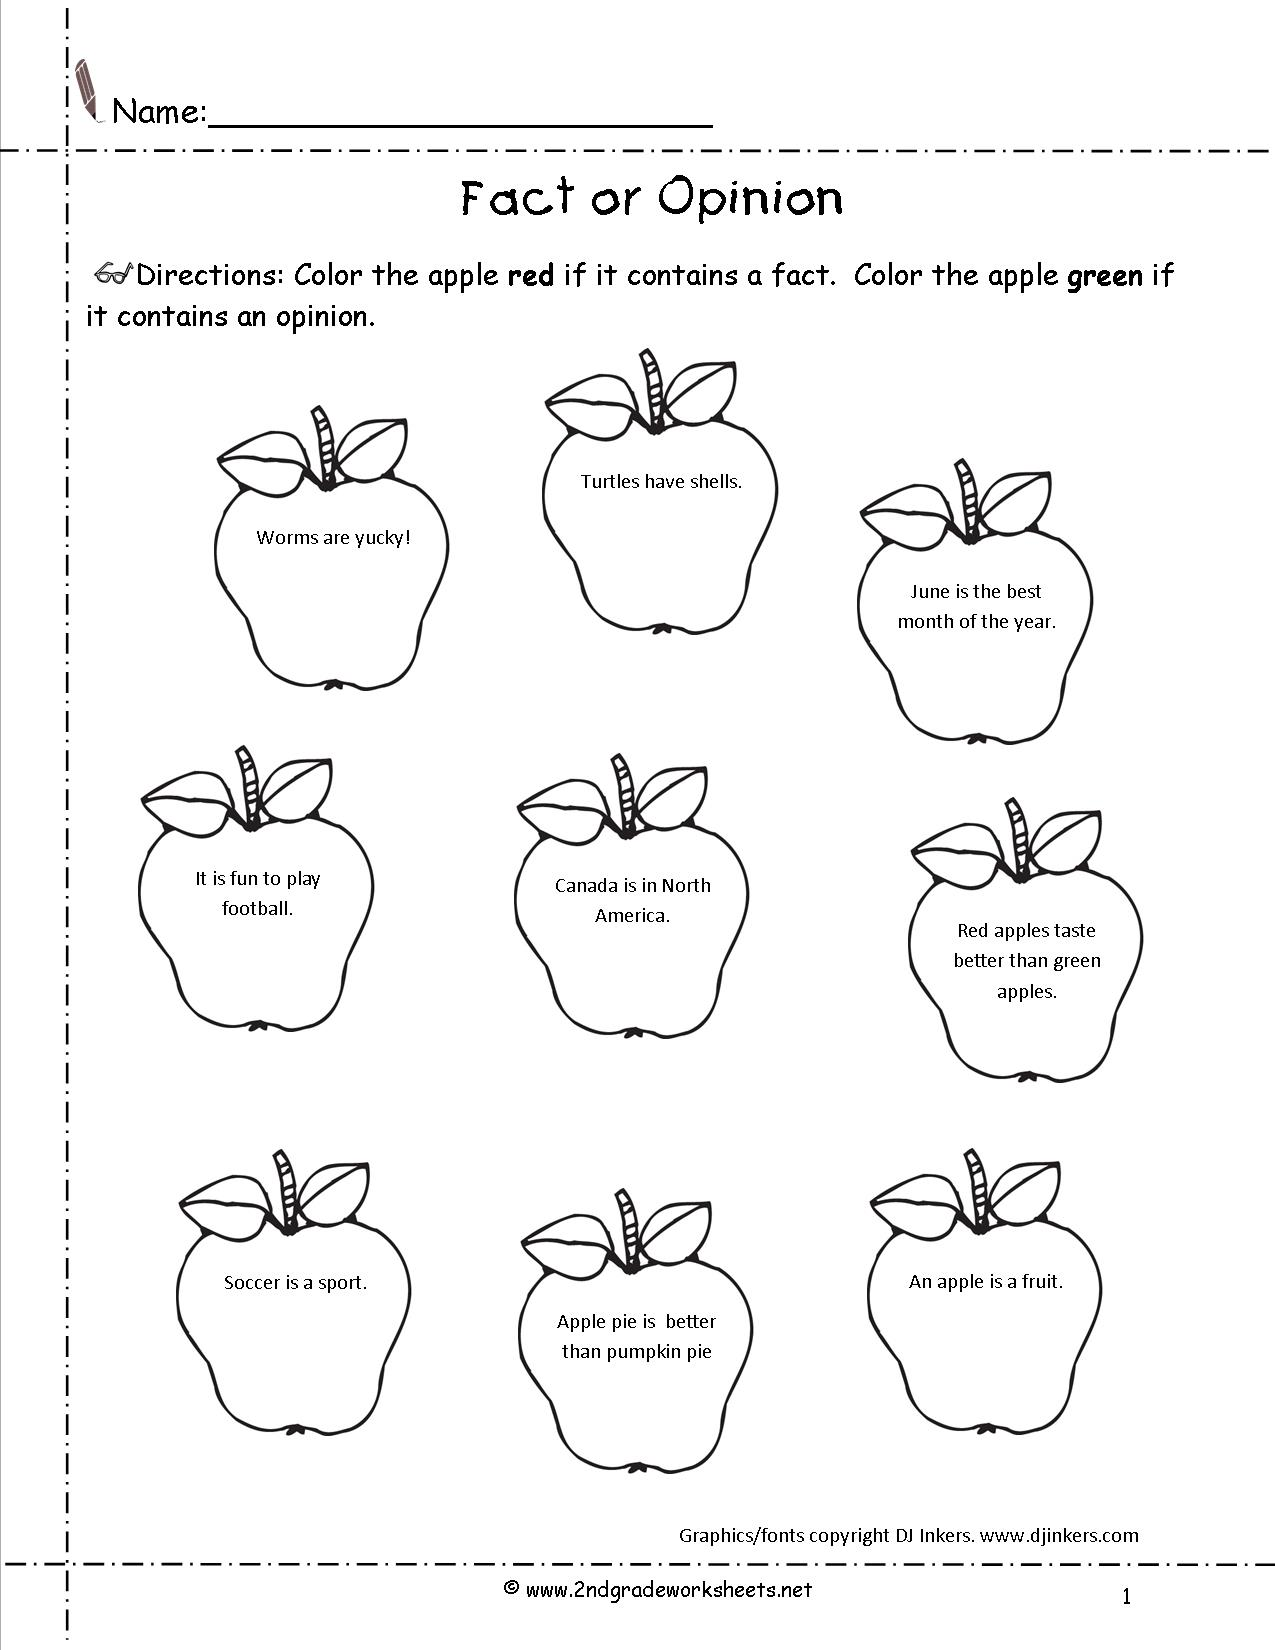 18 Best Images Of Ccss Math Worksheets